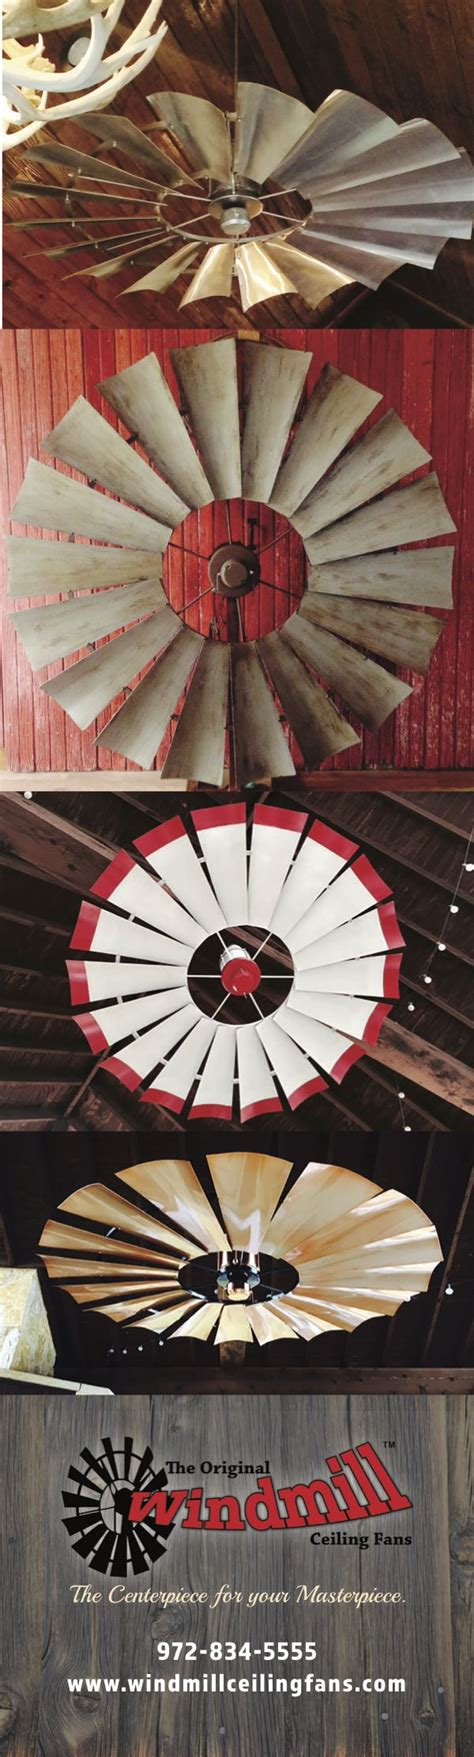 72 rustic windmill ceiling fan 192 best windmill wall decor images on pinterest quilt